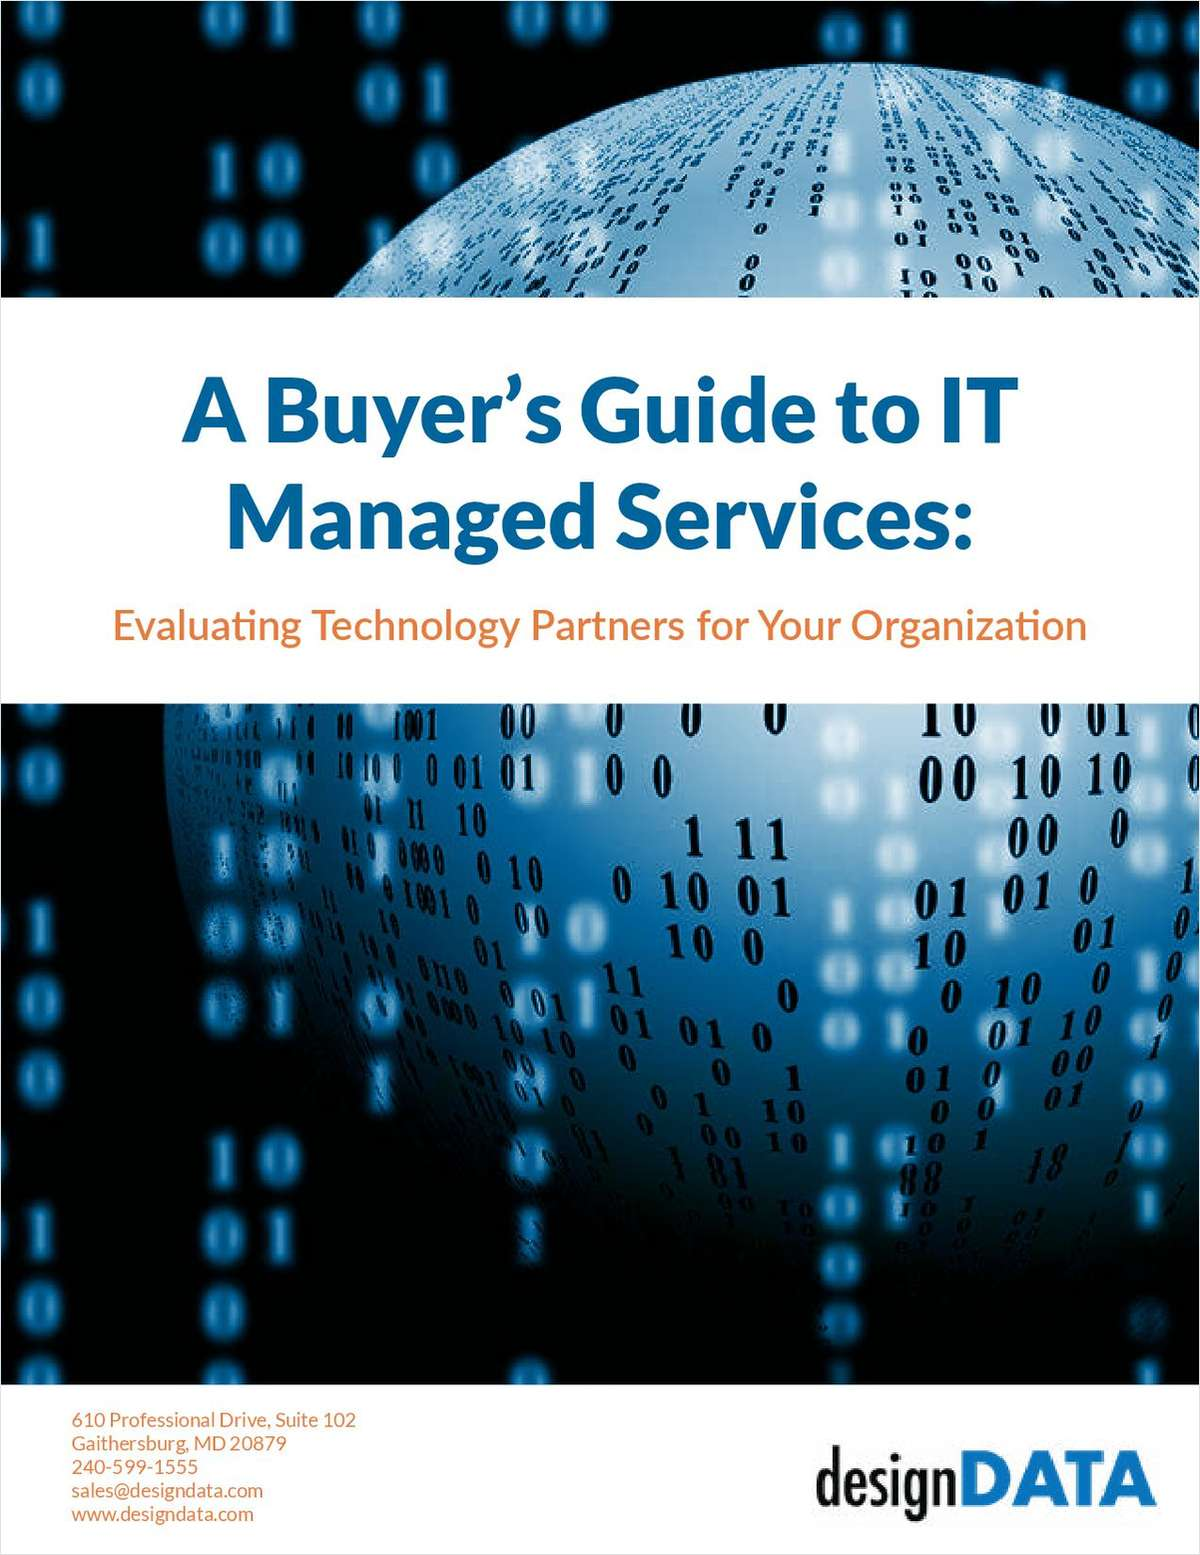 A Buyer's Guide to IT Managed Services: Evaluating Technology Partners for Your Organization